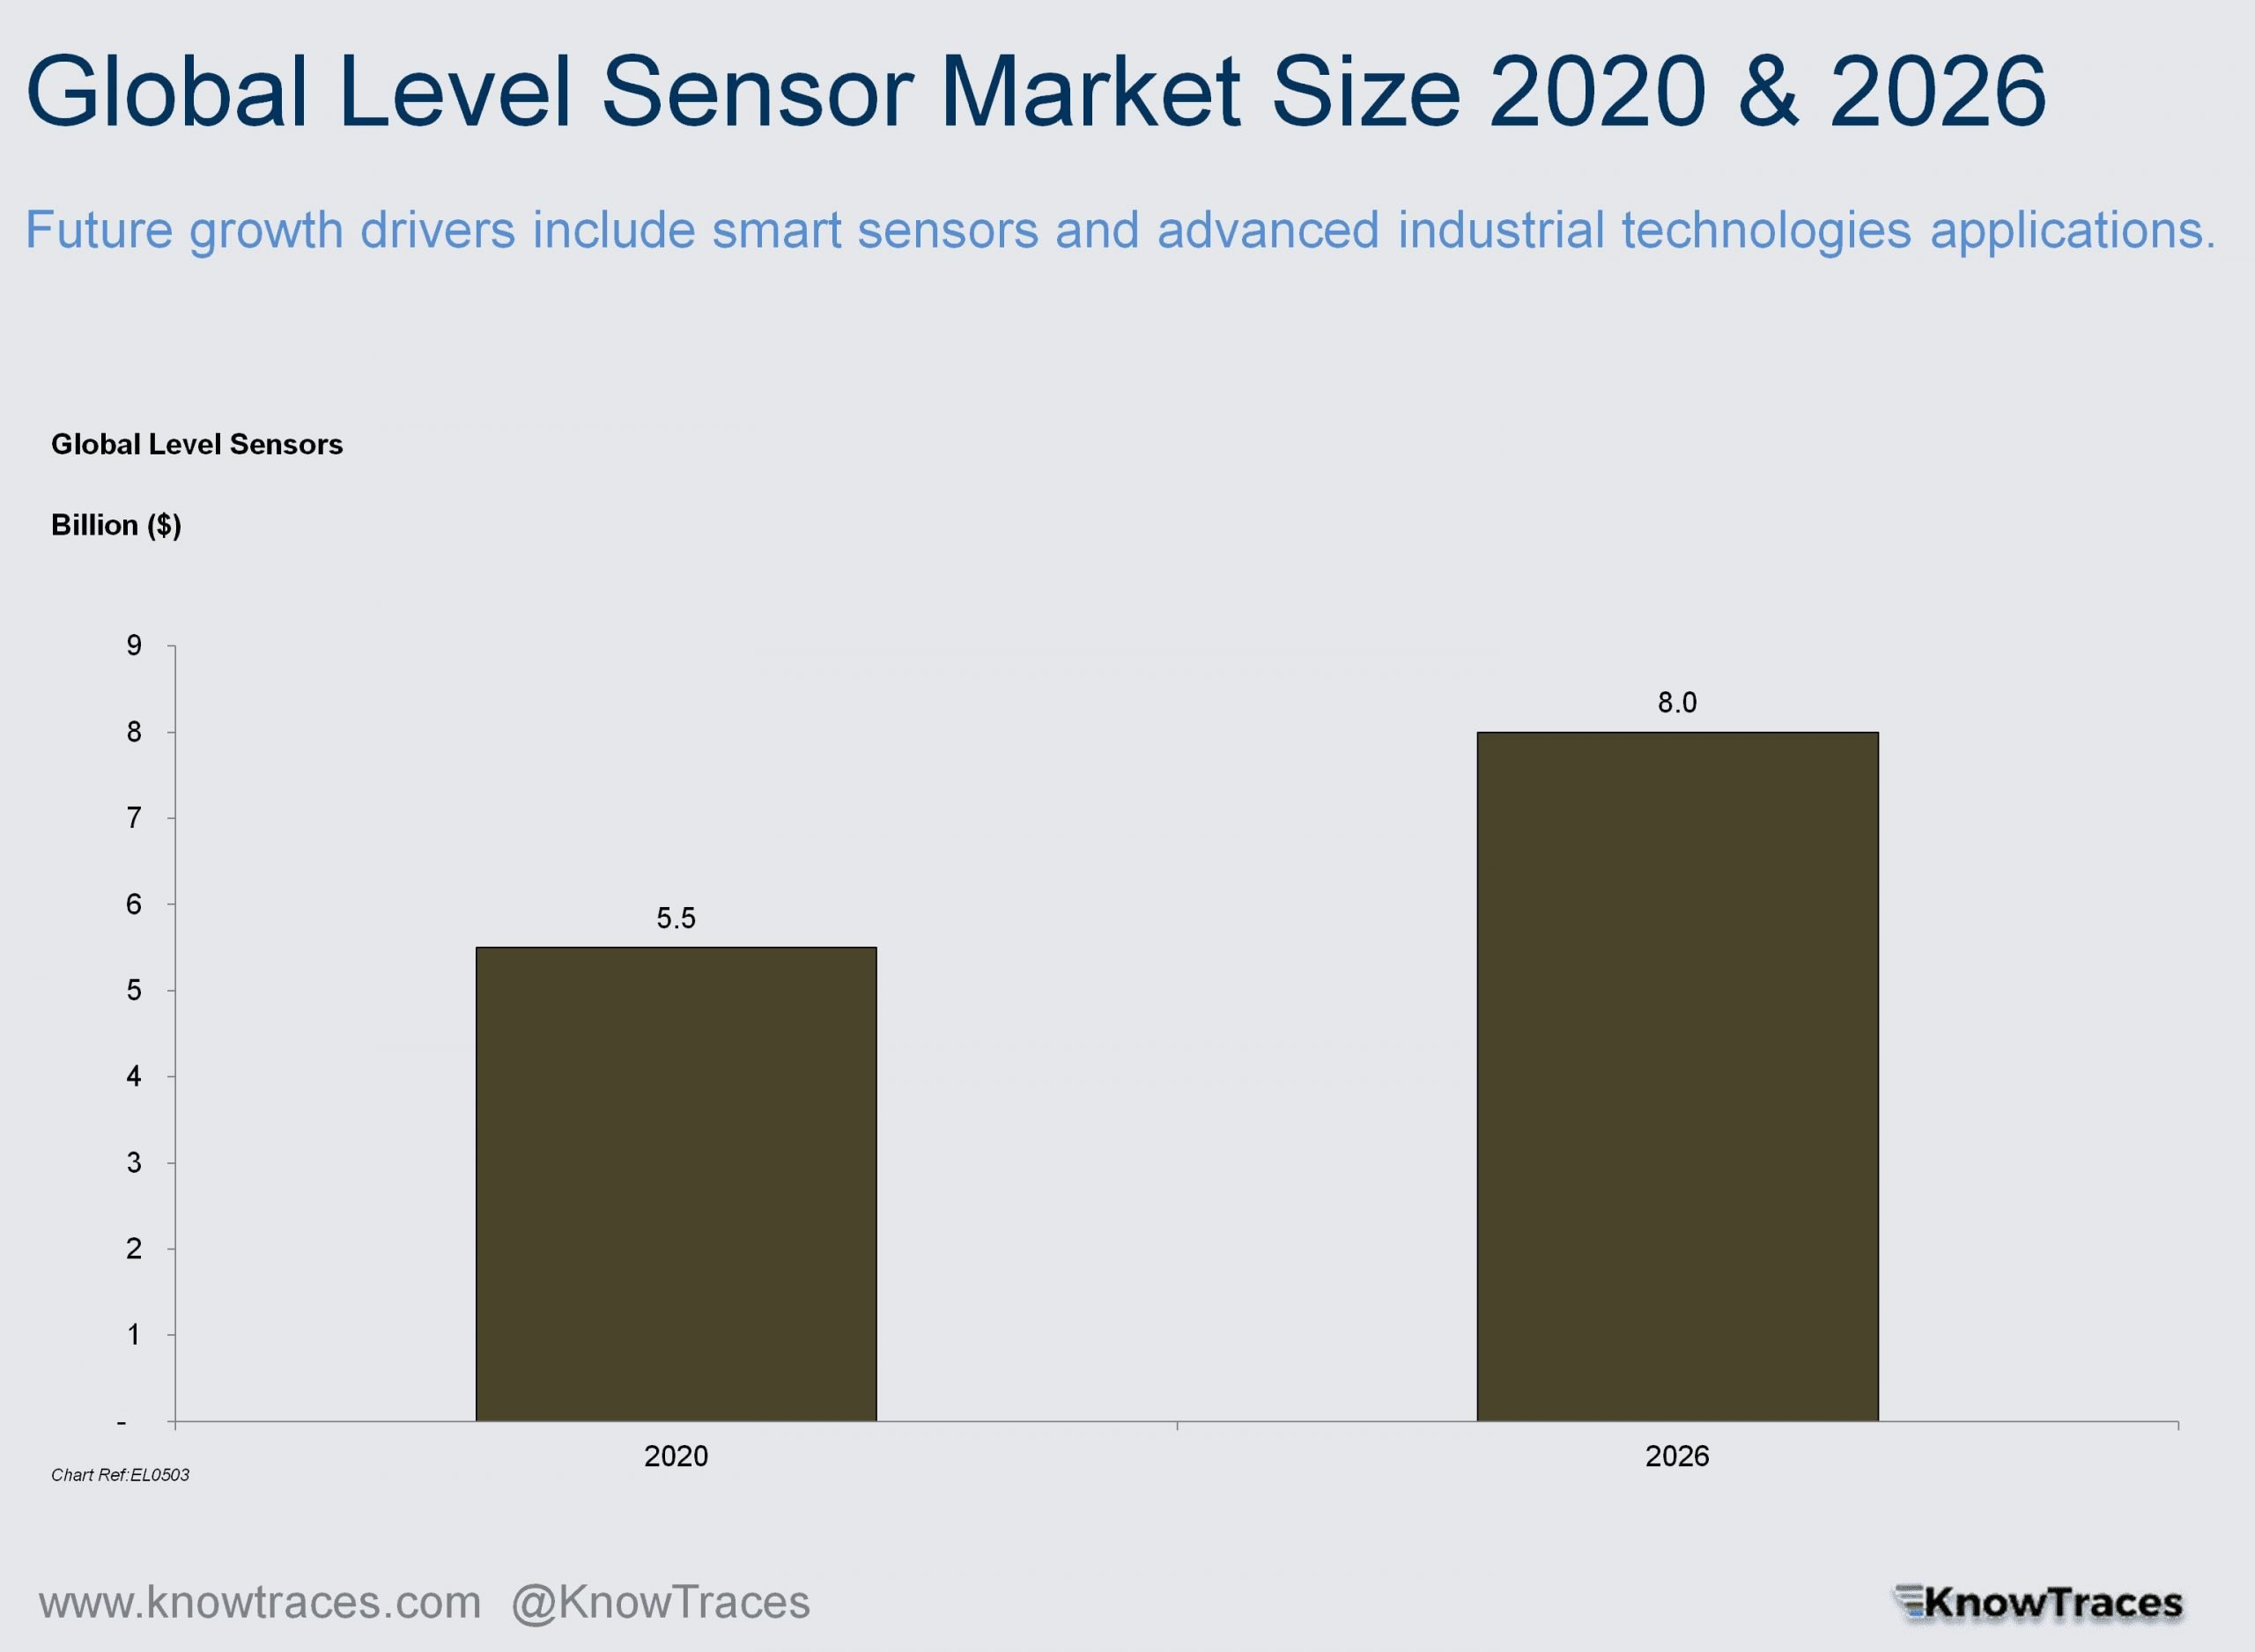 Global Level Sensor Market Size 2020 & 2026